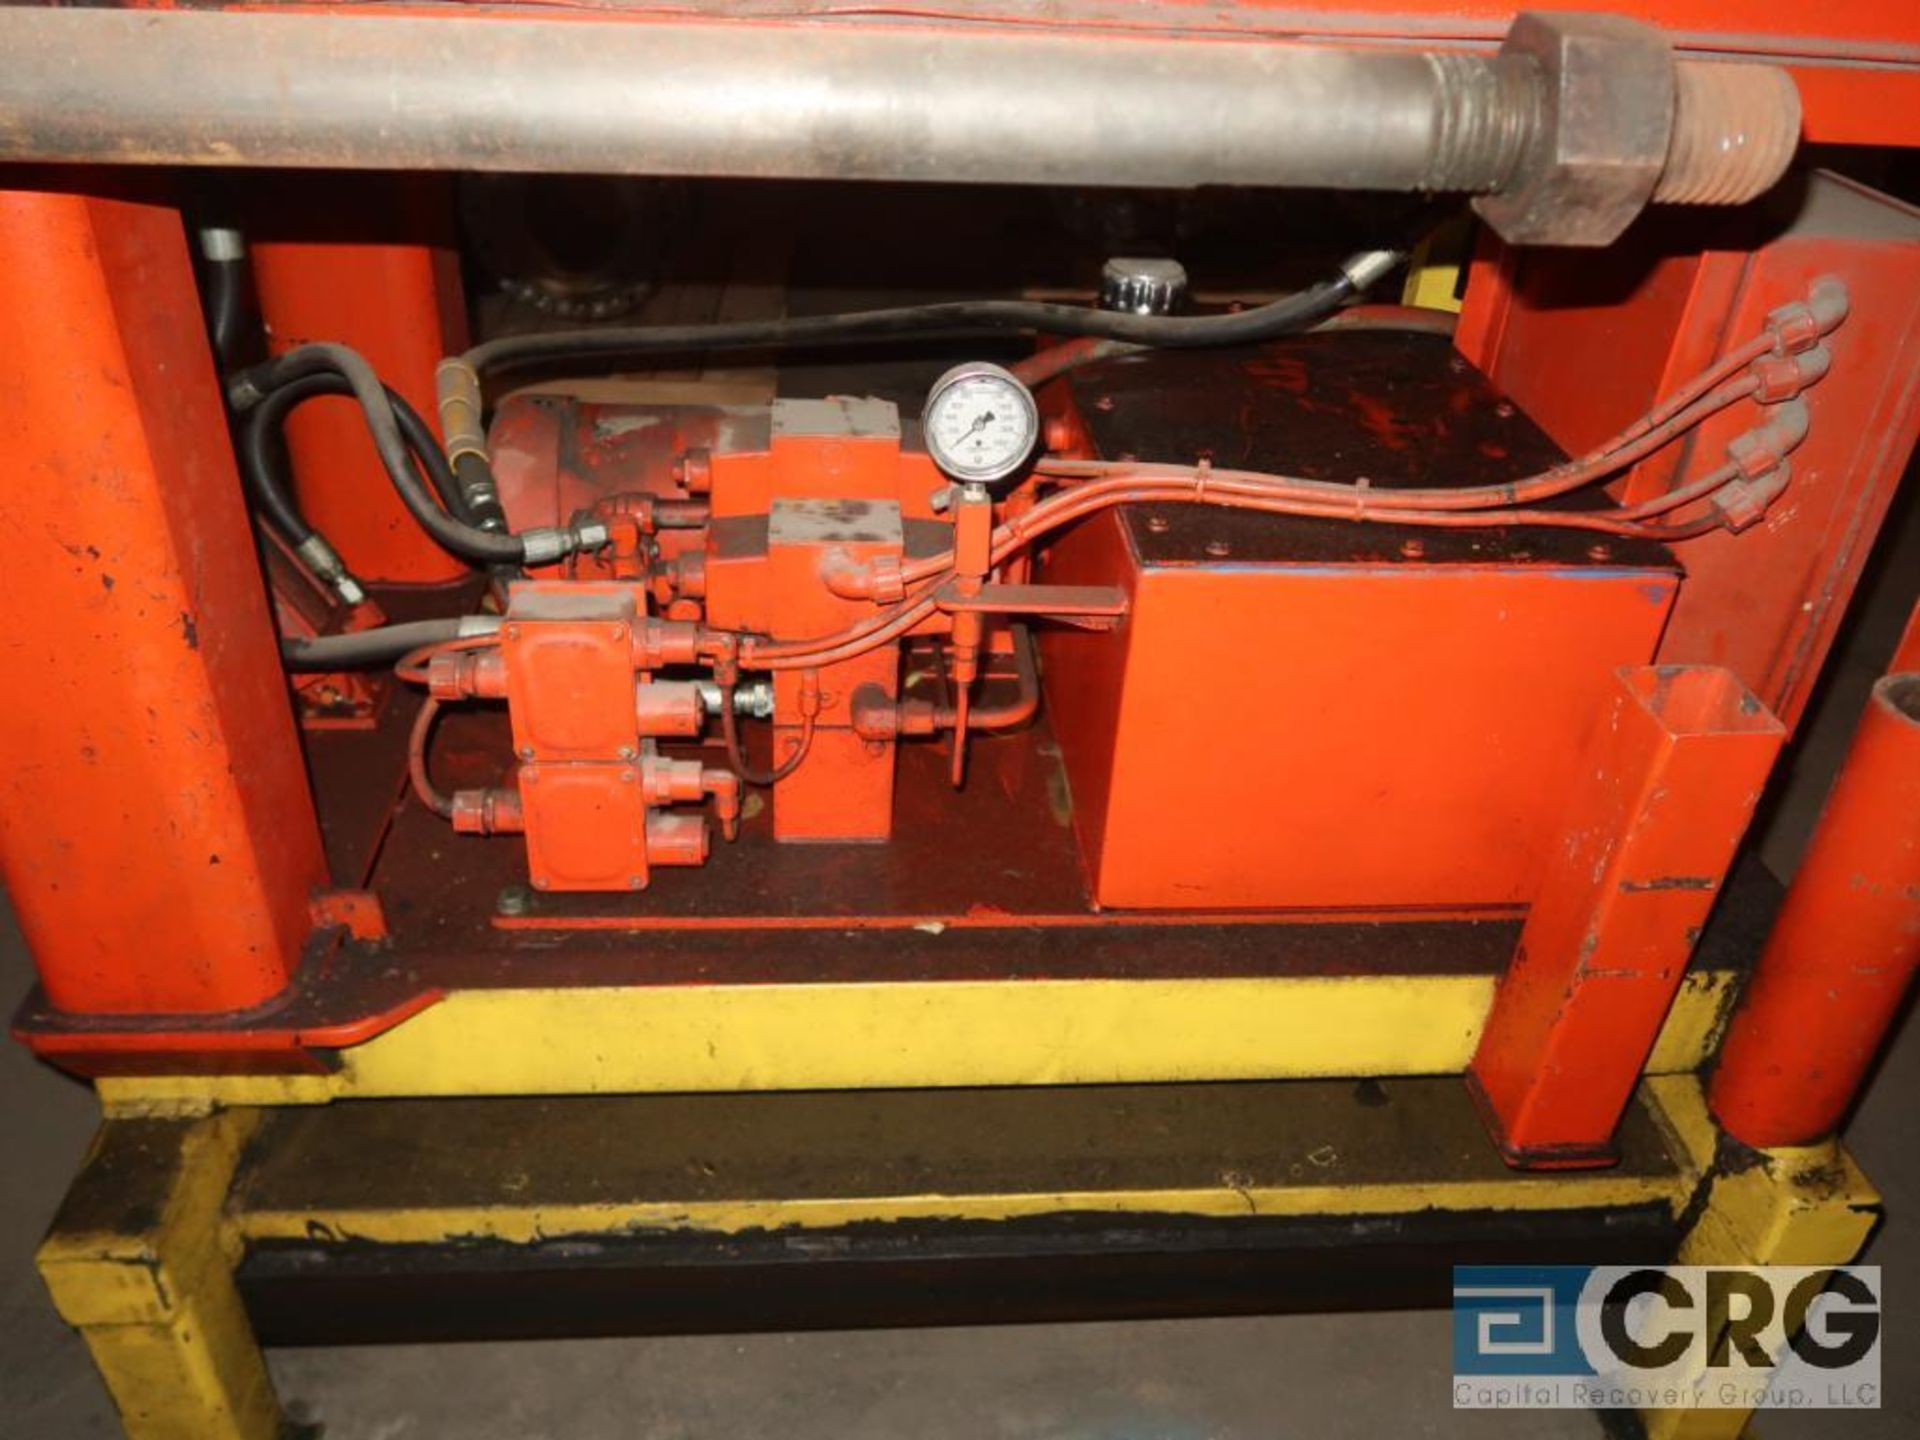 IRE Port O Cut roll guillotine, 36 in. blade, s/n 18471 (Off Site Warehouse) - Image 2 of 2